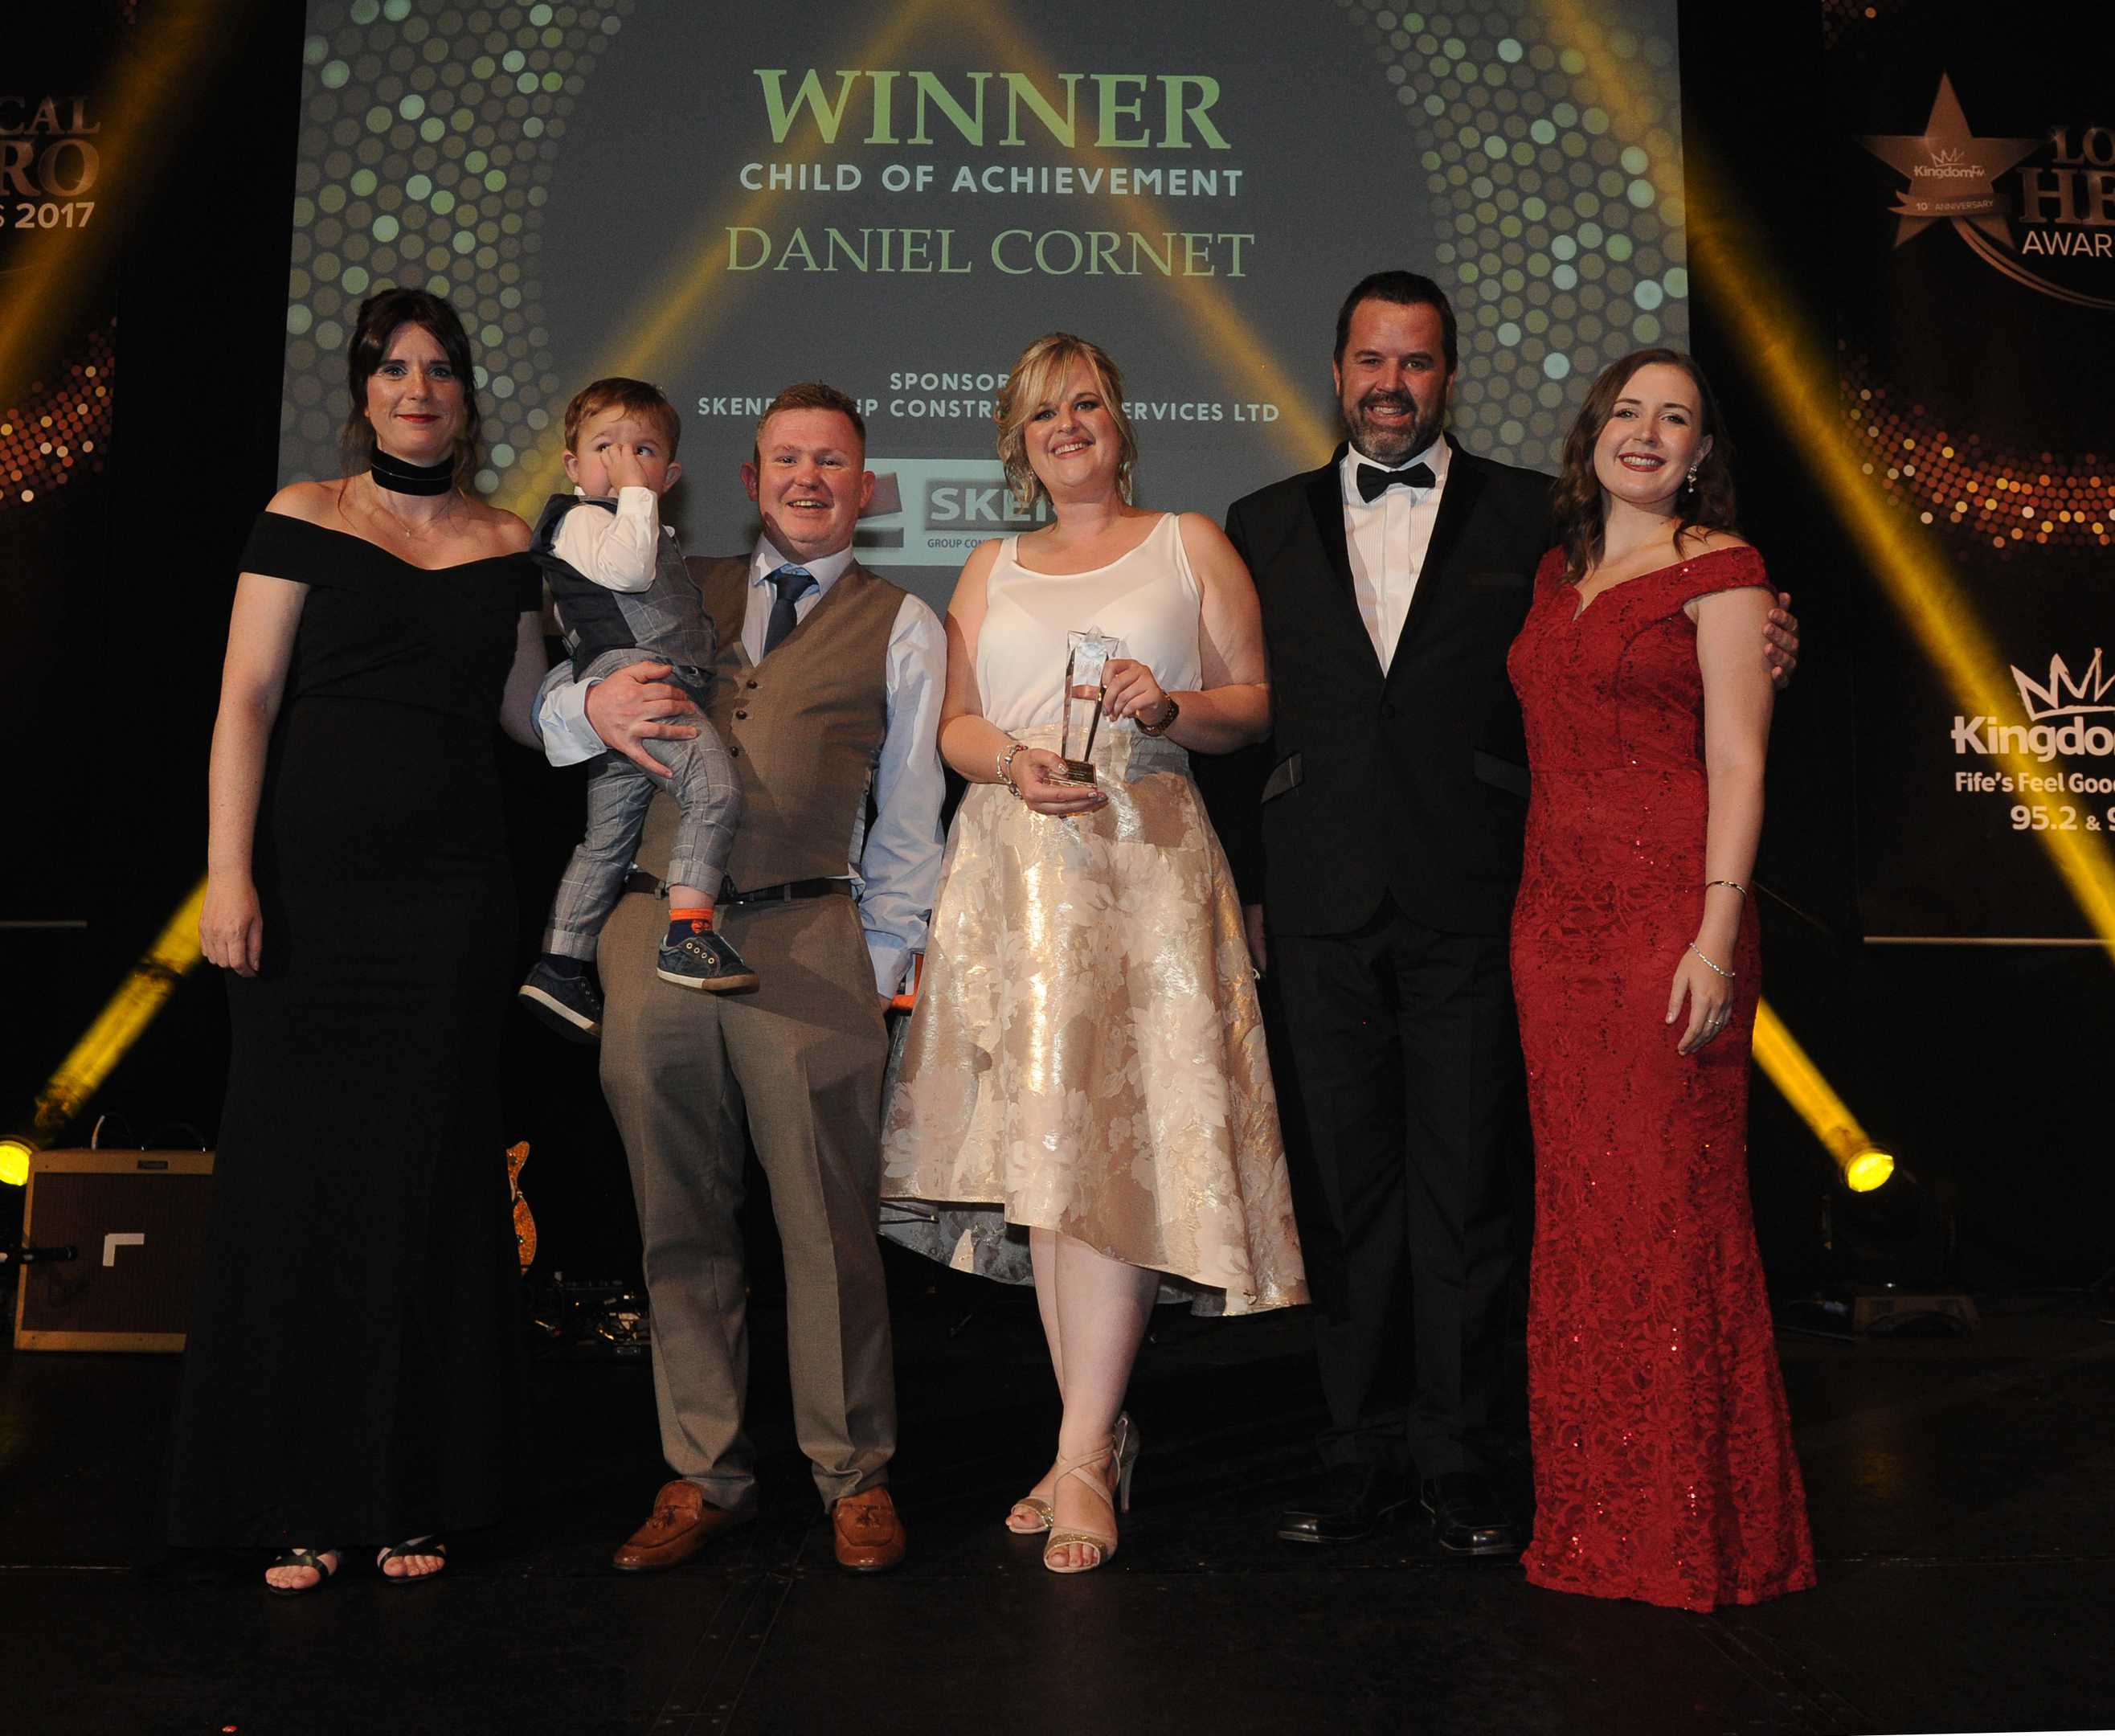 Daniel Cornet and his family picked up the Child of Achievement Award on Friday night.